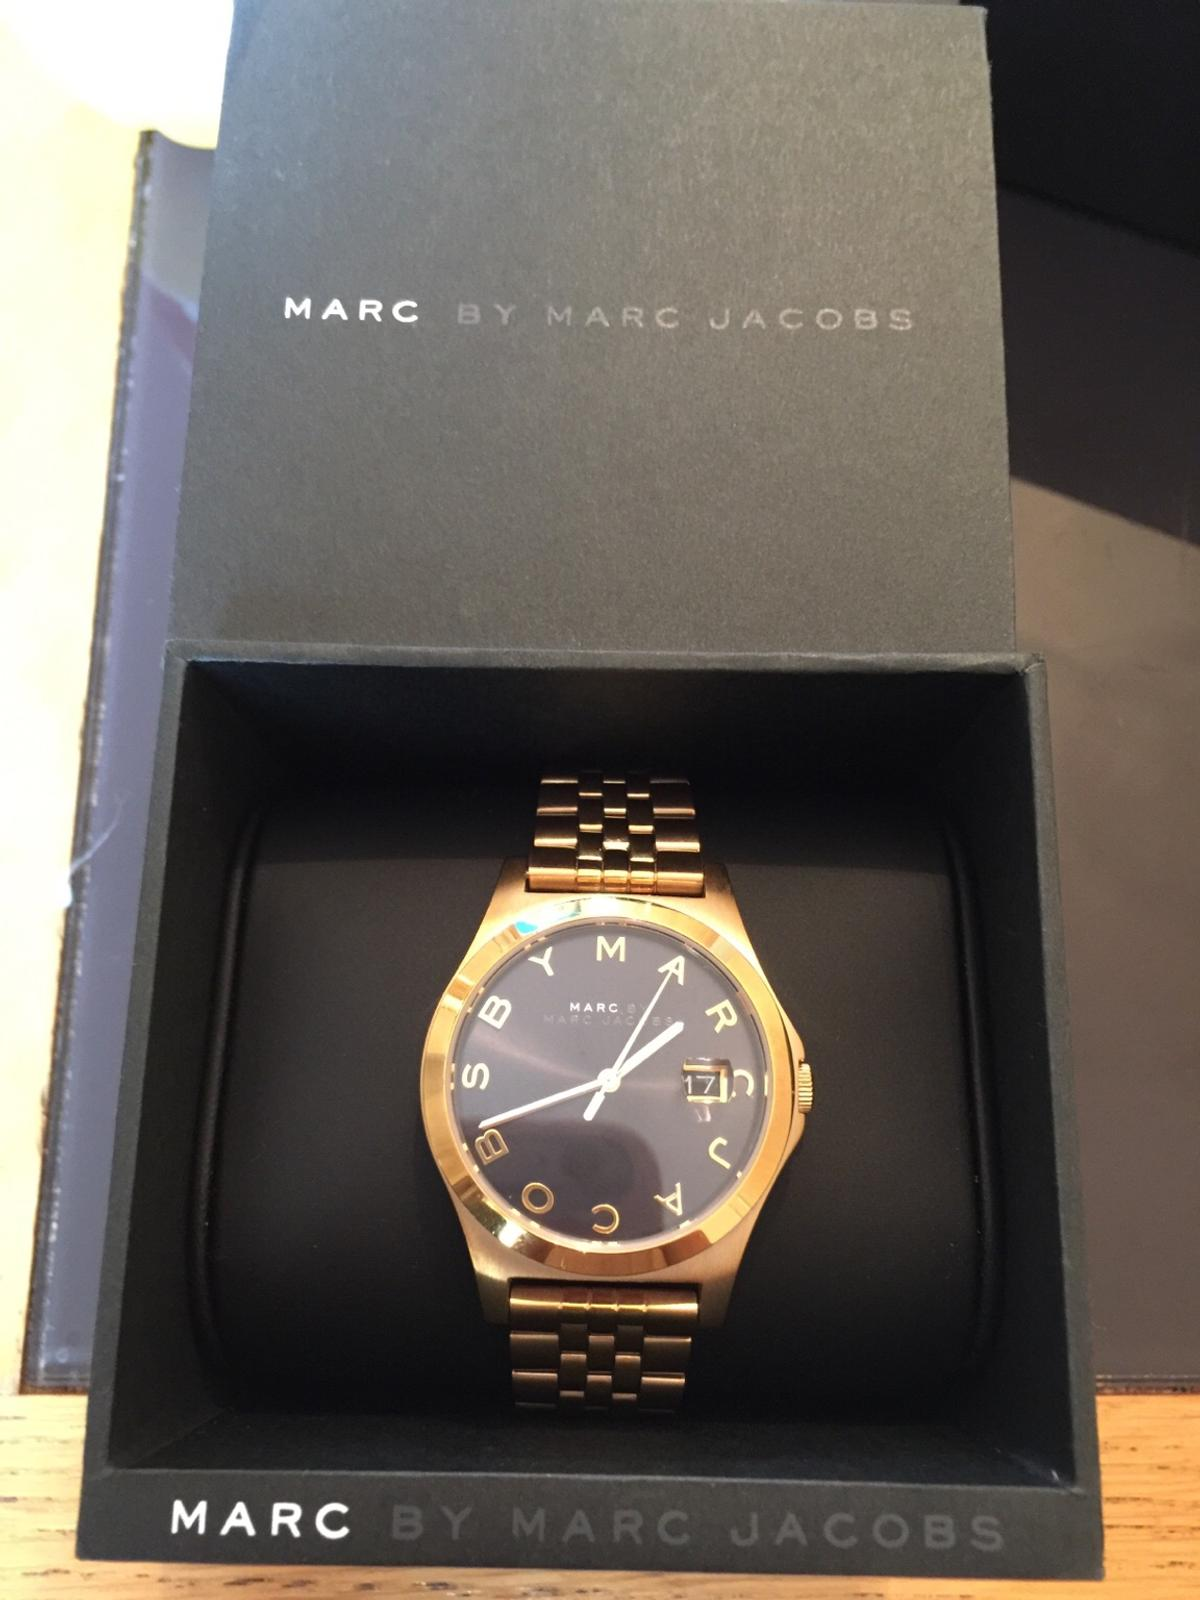 Yellow gold Marc Jacobs watch bought 6 months ago for £339 and selling for £70 Only worn a few times. Have all packaging and spare links. Does require a new battery which cost £10 so i have lowered the price. Literally perfect condition so would make a good gift as well. Can deliver if close by. Thanks